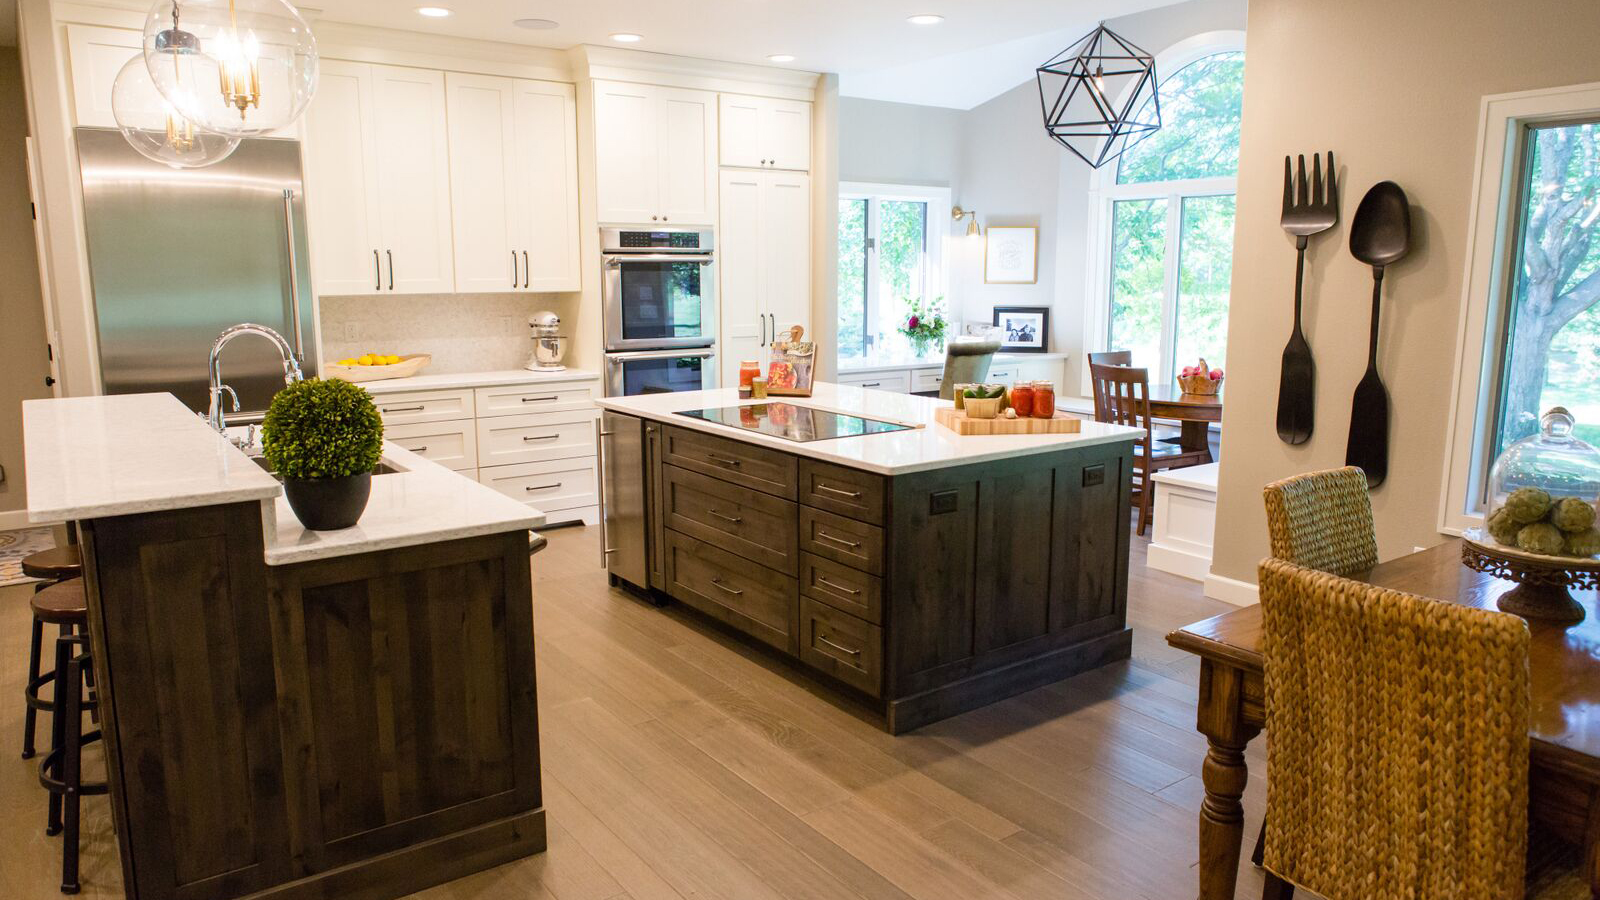 Remodel Design Award Winning Kitchen Remodel Cabinet Style Coralville